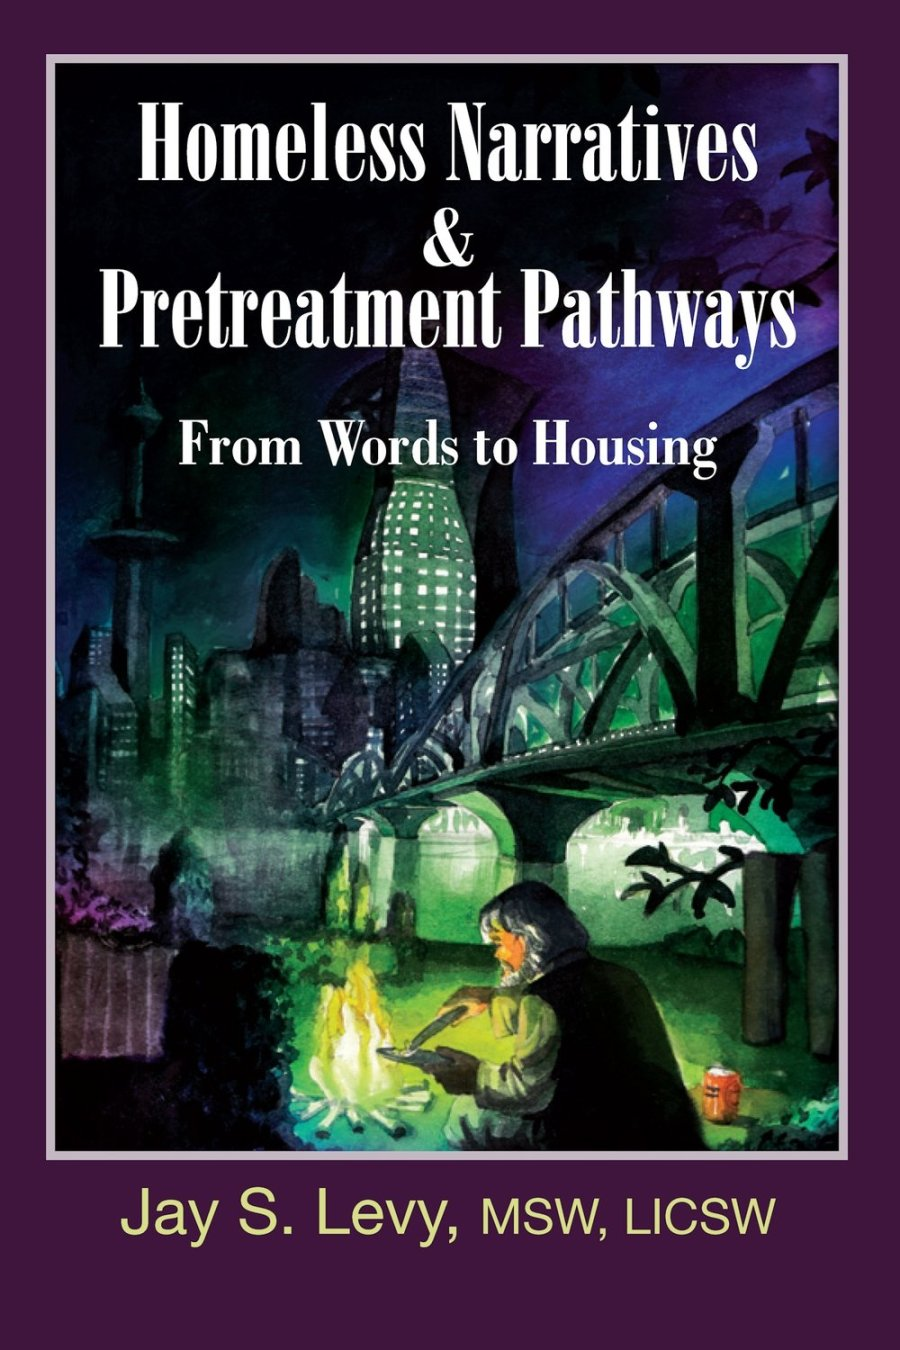 Homeless Narratives & Pretreatment Pathways: From Words to Housing